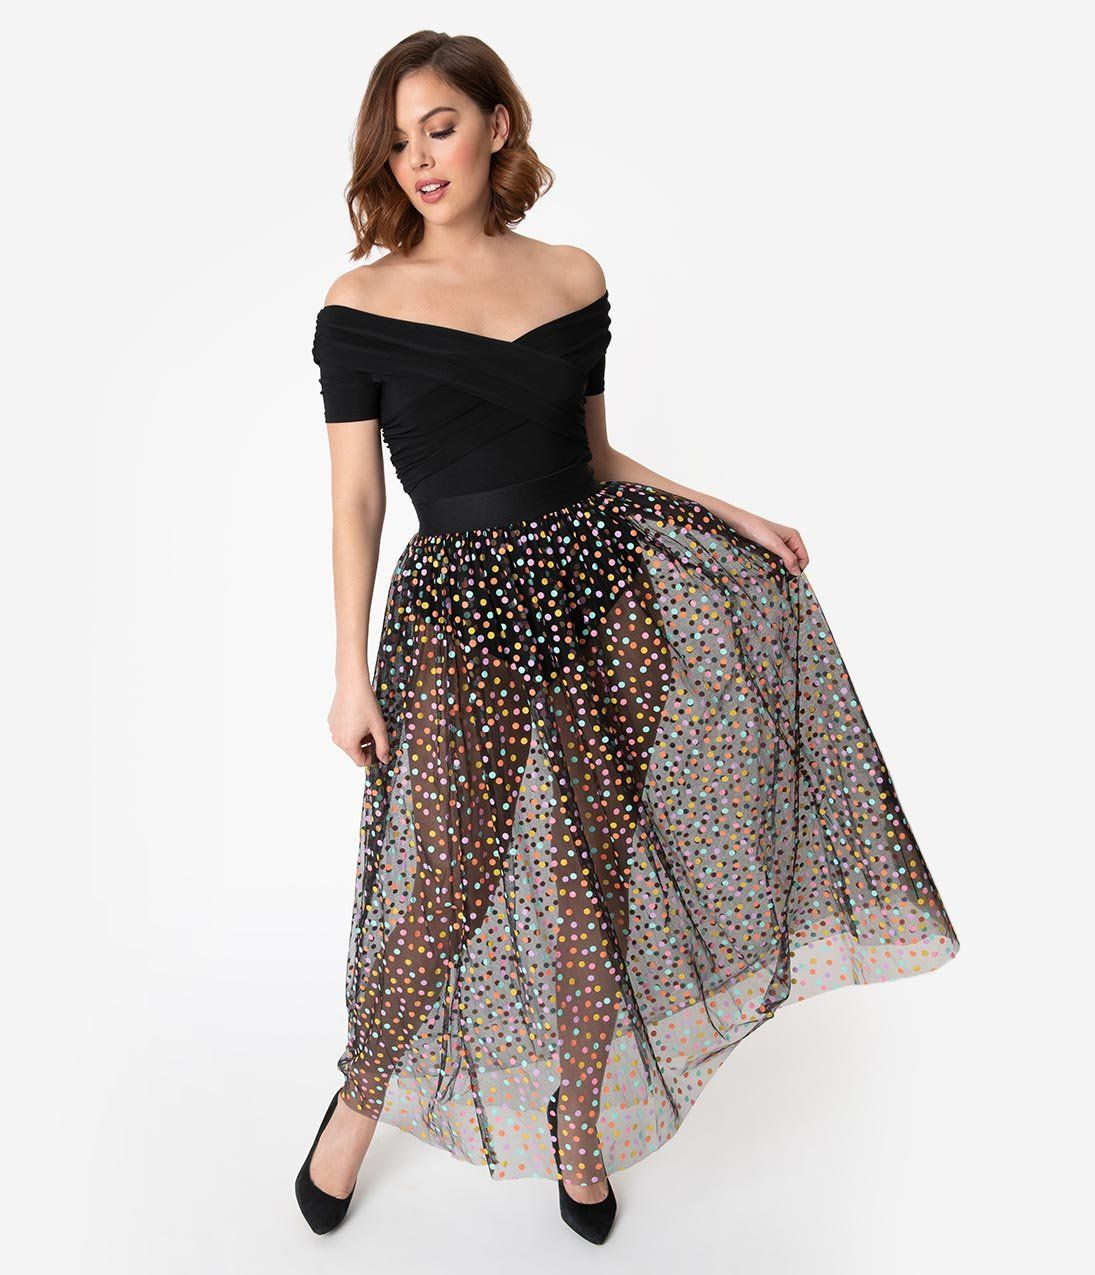 39cd4b39fdfcd0 Black & Multicolor Polka Dot Mesh Tulle Kiara Long Skirt – Unique Vintage